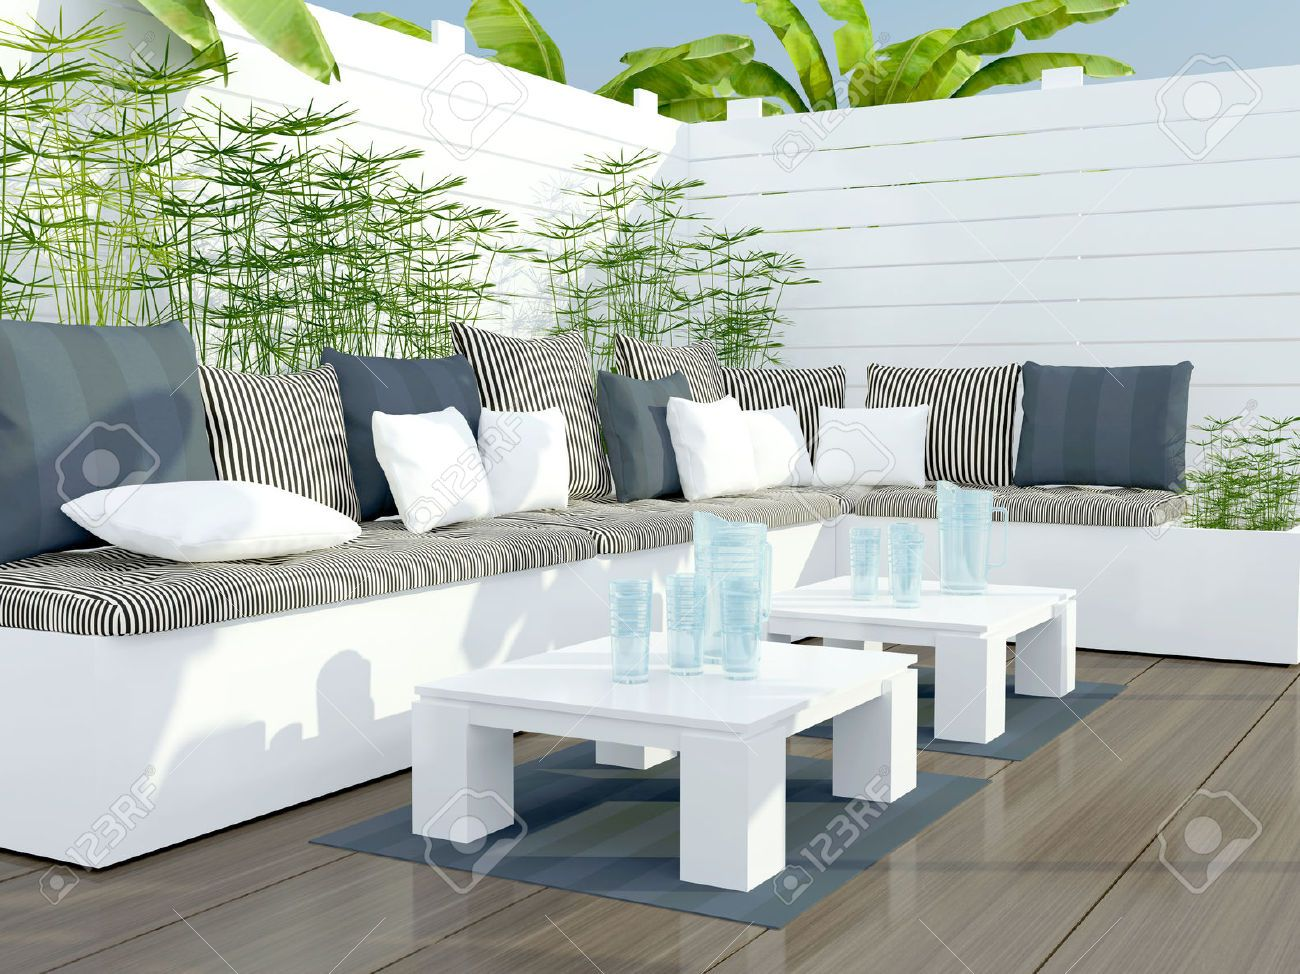 White Rendered Outdoor Seating   Google Search